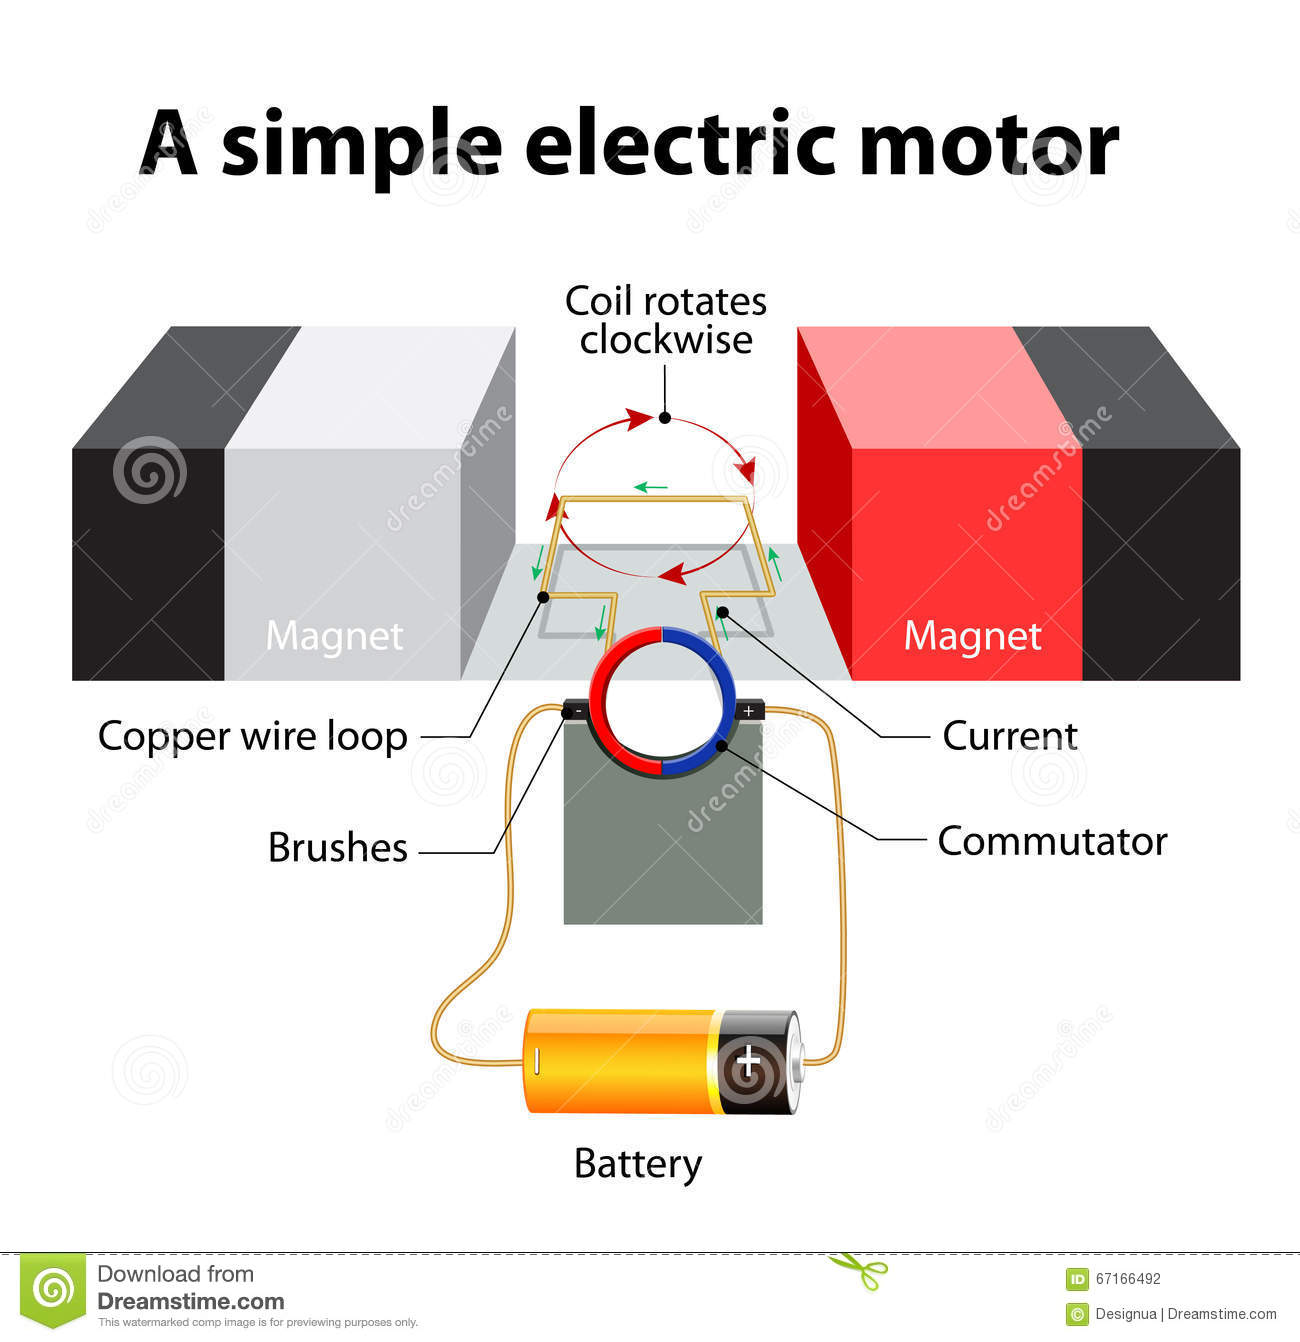 dc motor diagram labels 200 hp dc motor wiring schematic simple electric motor. vector diagram stock vector ... #13